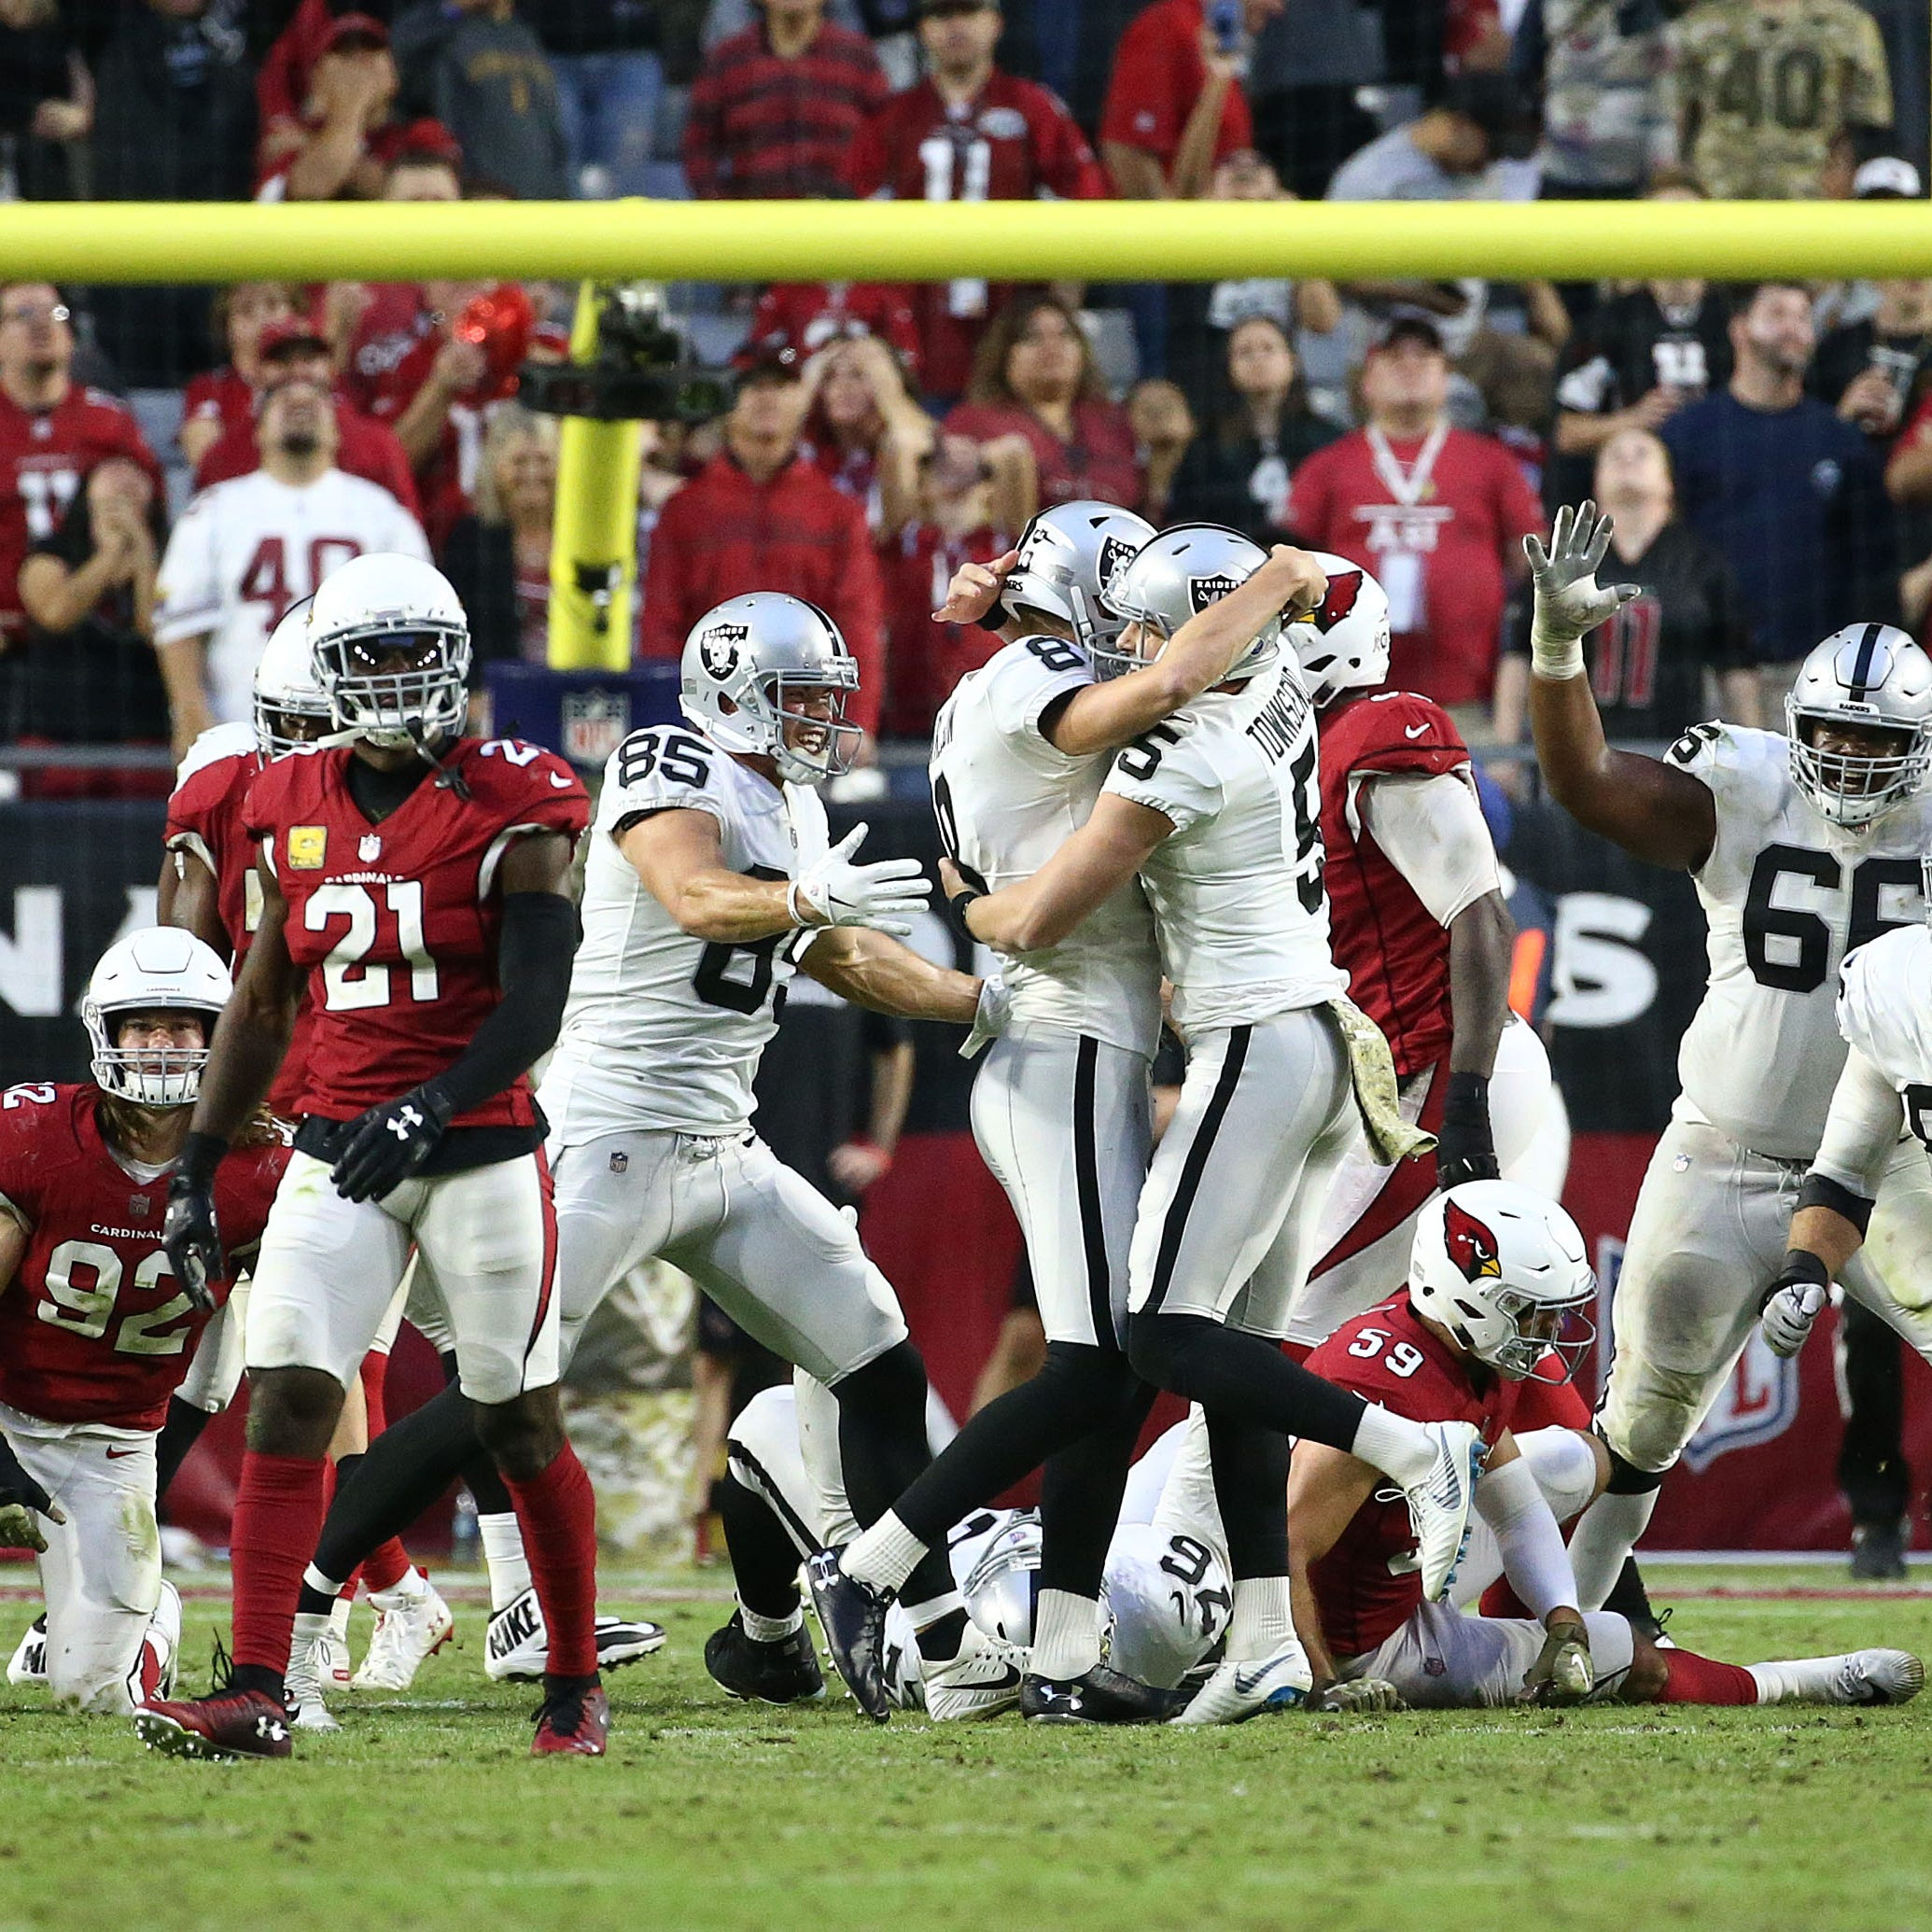 Jermaine Gresham's late penalty haunts Cardinals in last-second loss to Raiders